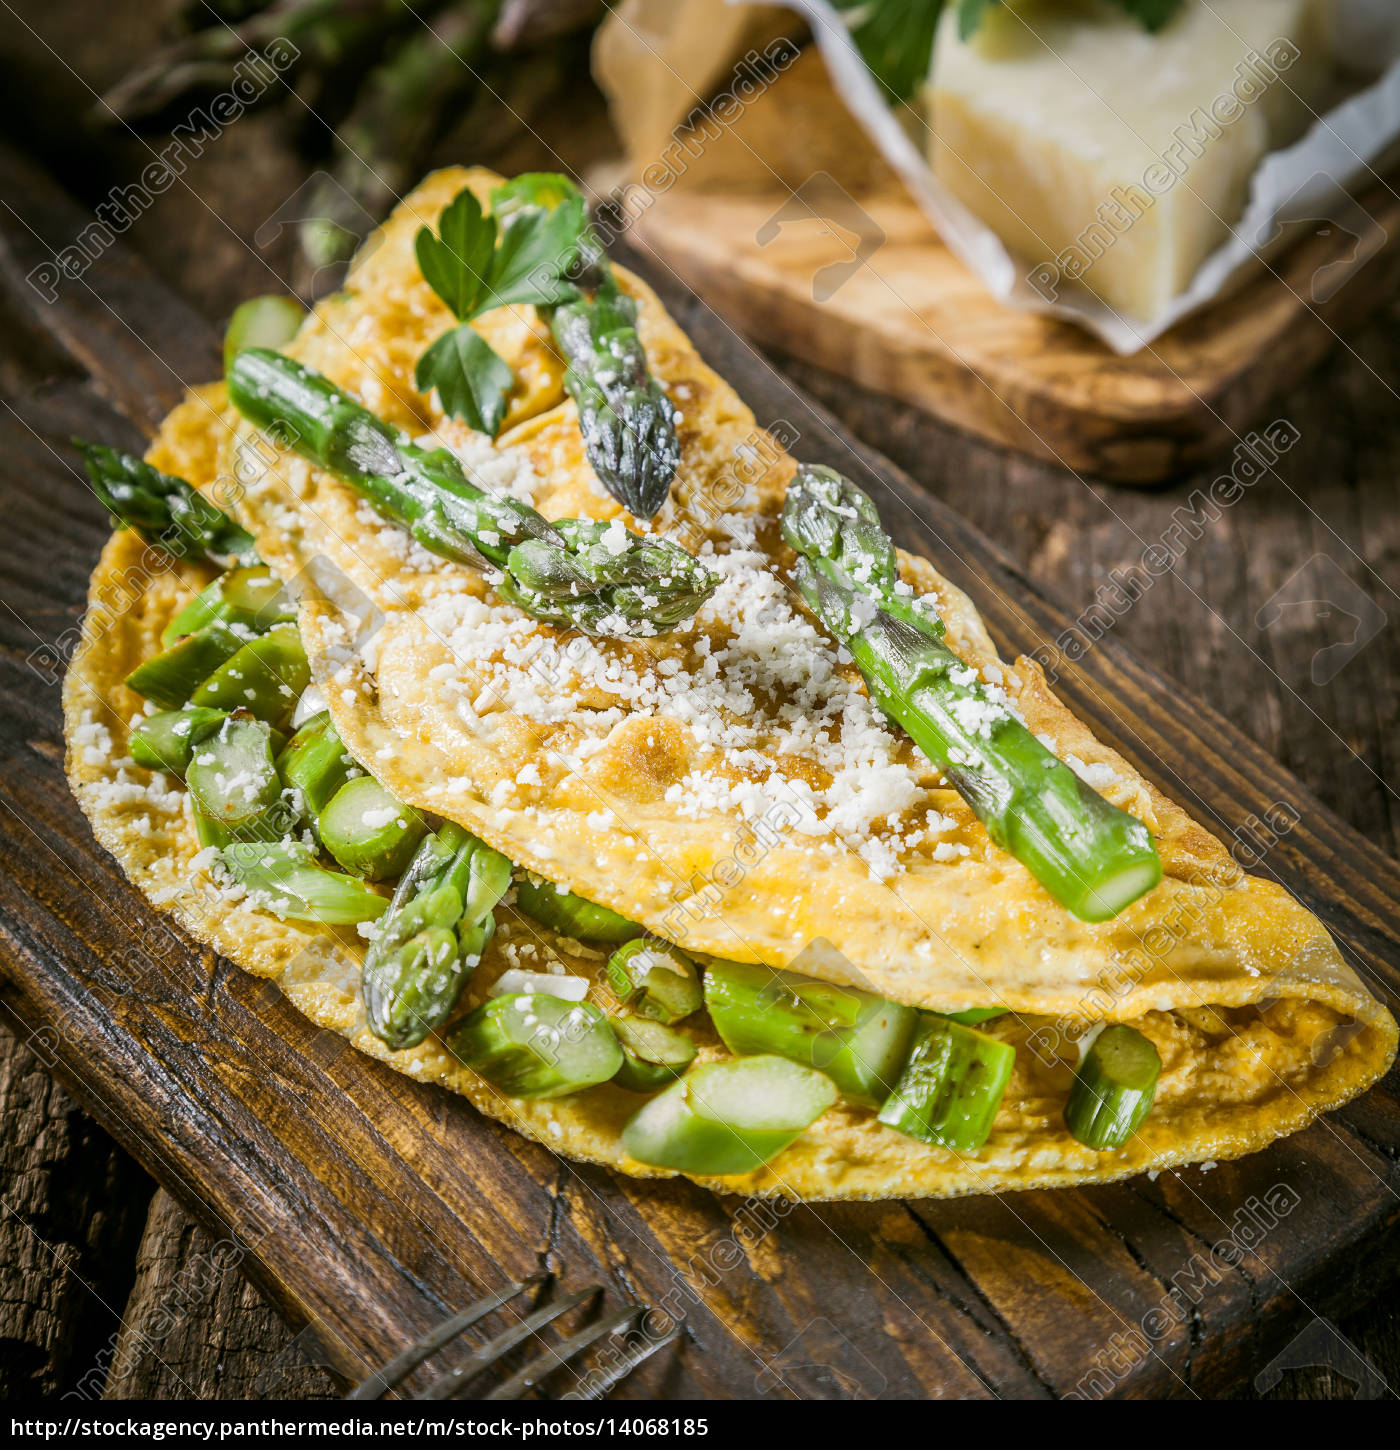 egg, omelette, garnished, with, asparagus, and - 14068185